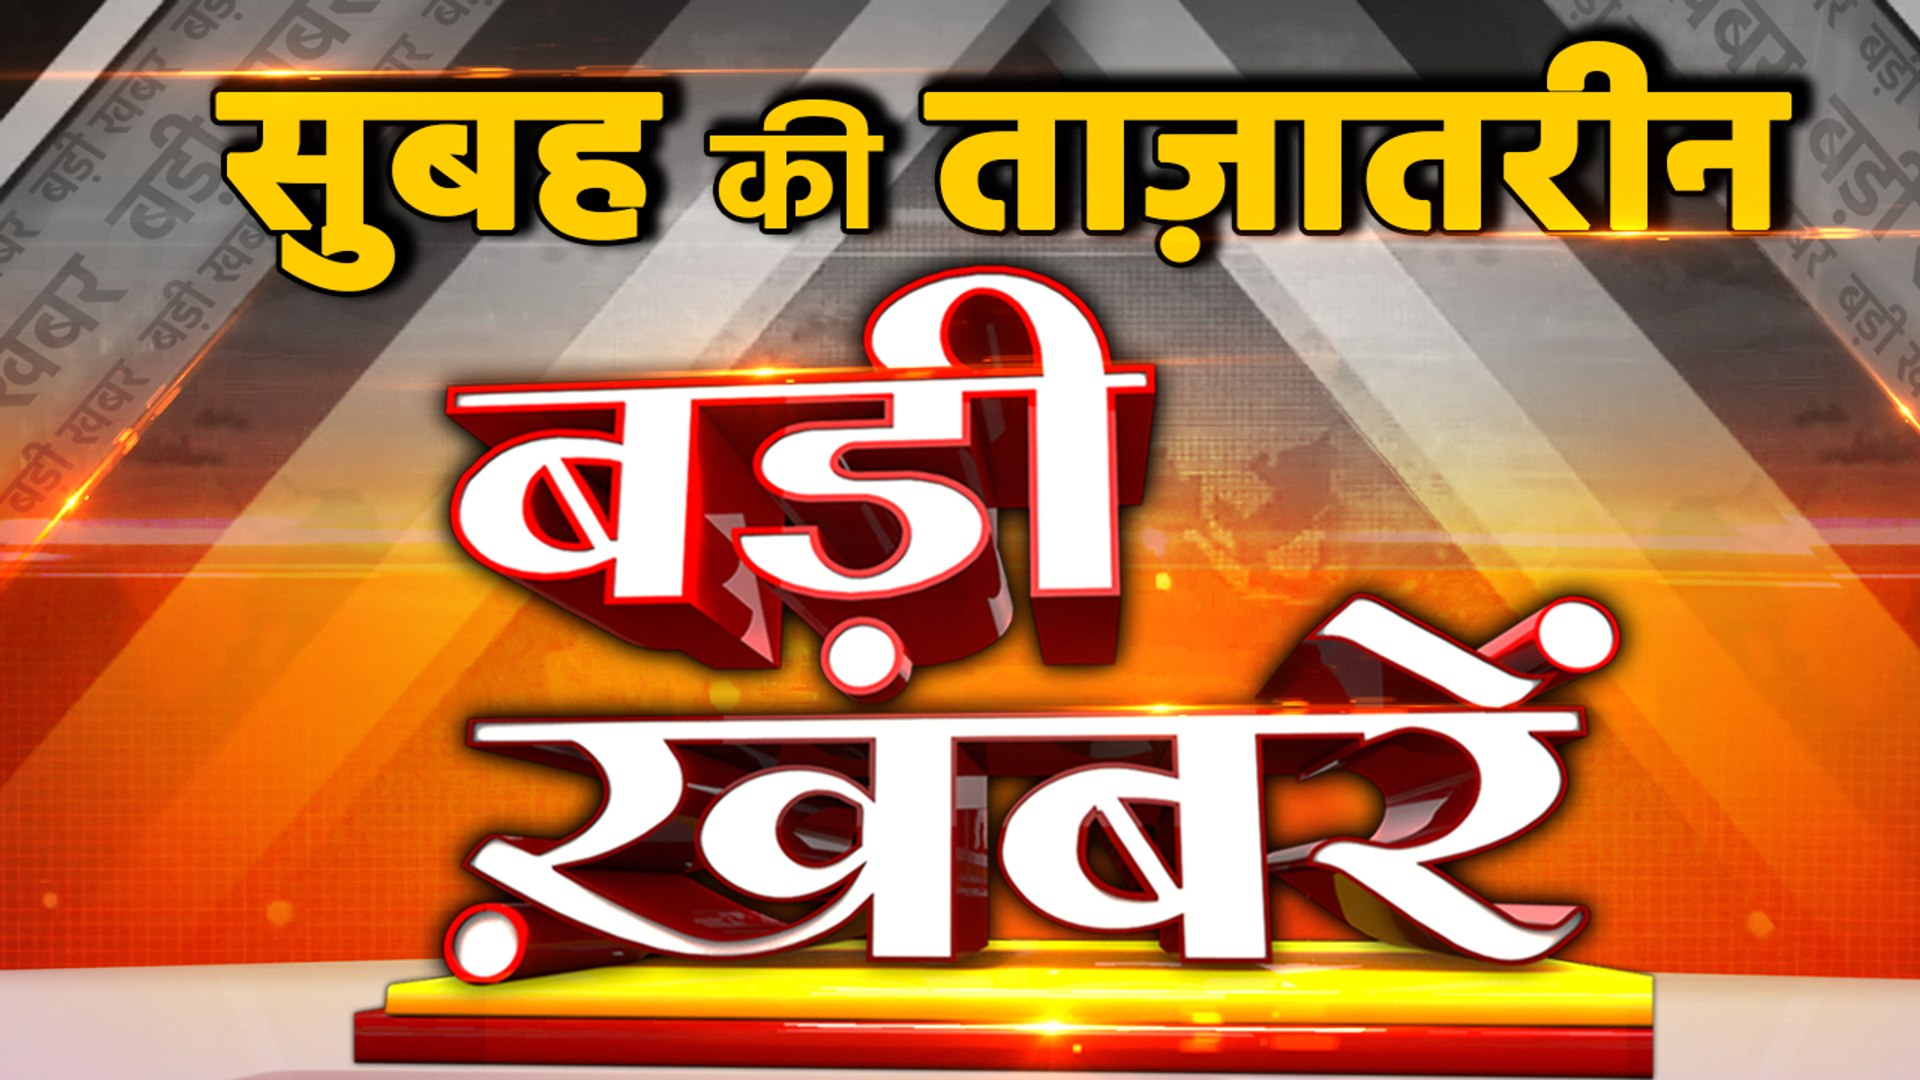 Top News| Latest News | Badi Khabar | Headlines | 14 September News| India Top News | वनइंडिया हिंदी